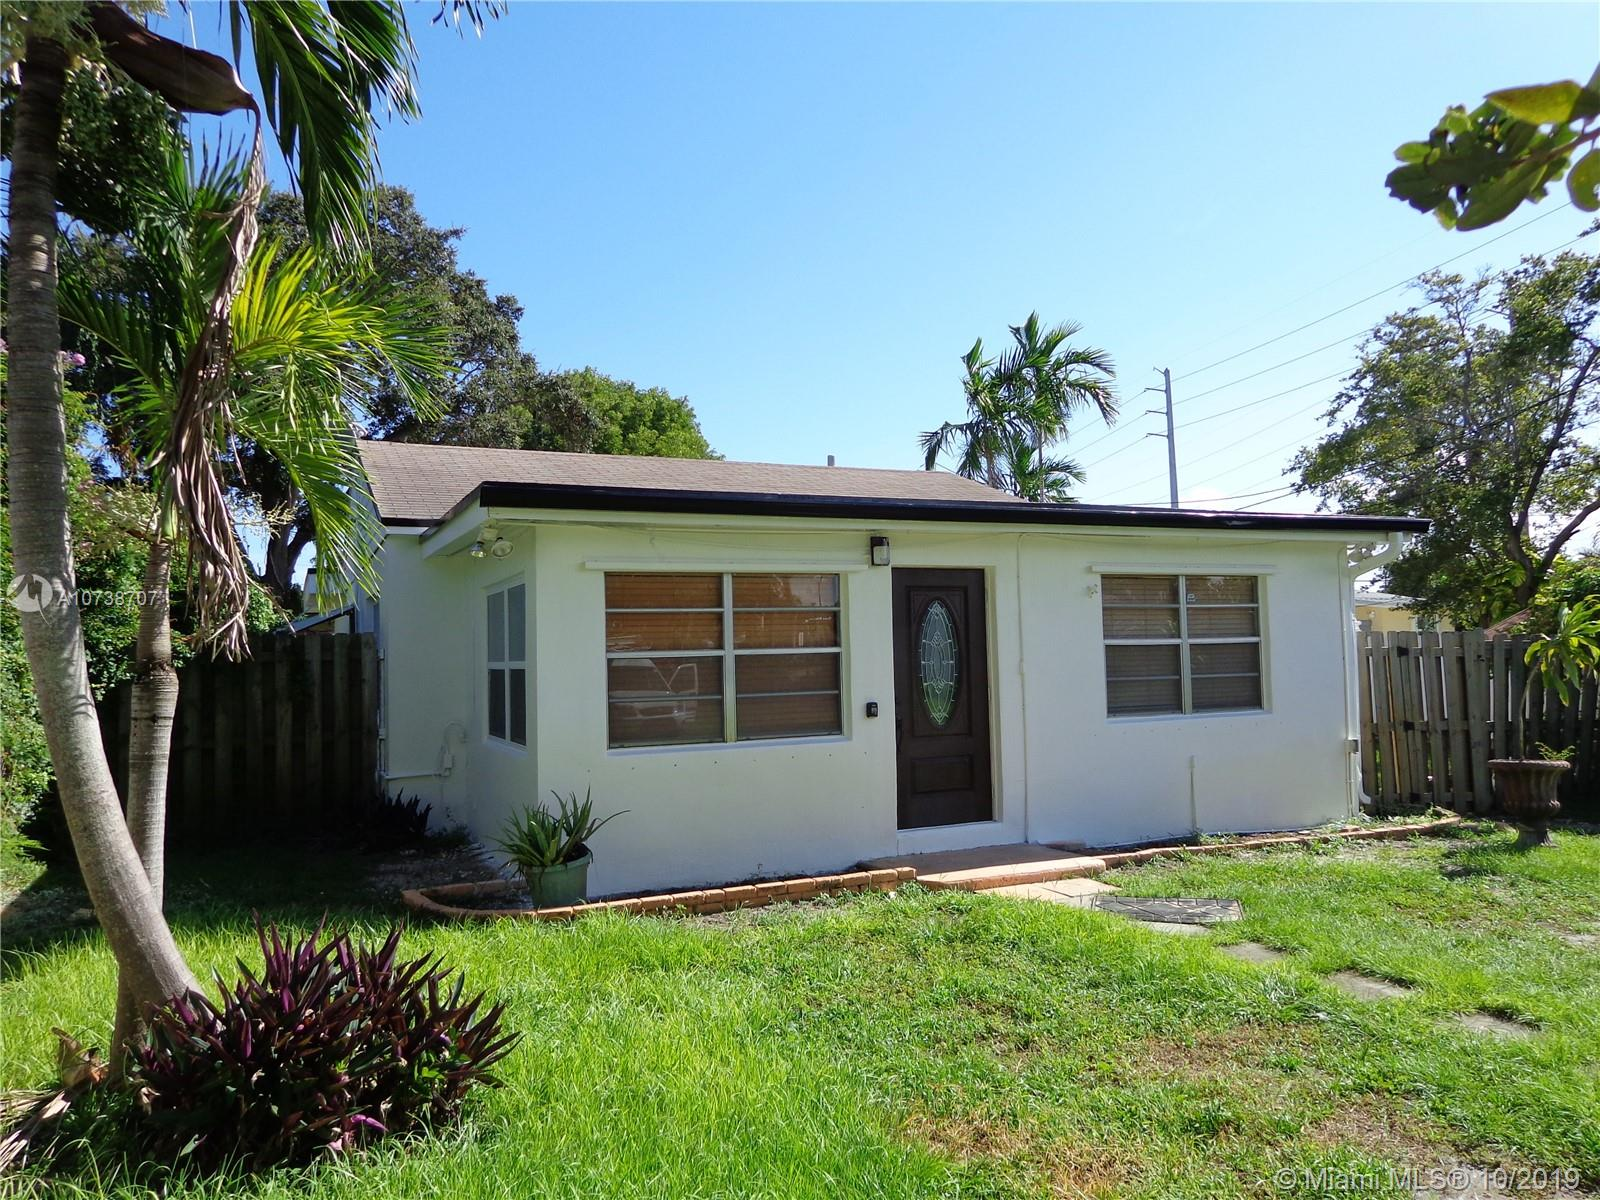 Great property for 1st time owner or investor. Home sits on a huge lot, with plenty of parking space. Located within 1 mile from the ocean, and minutes from the FT Lauderdale airport. This is a real gem in the heart of Dania Beach.